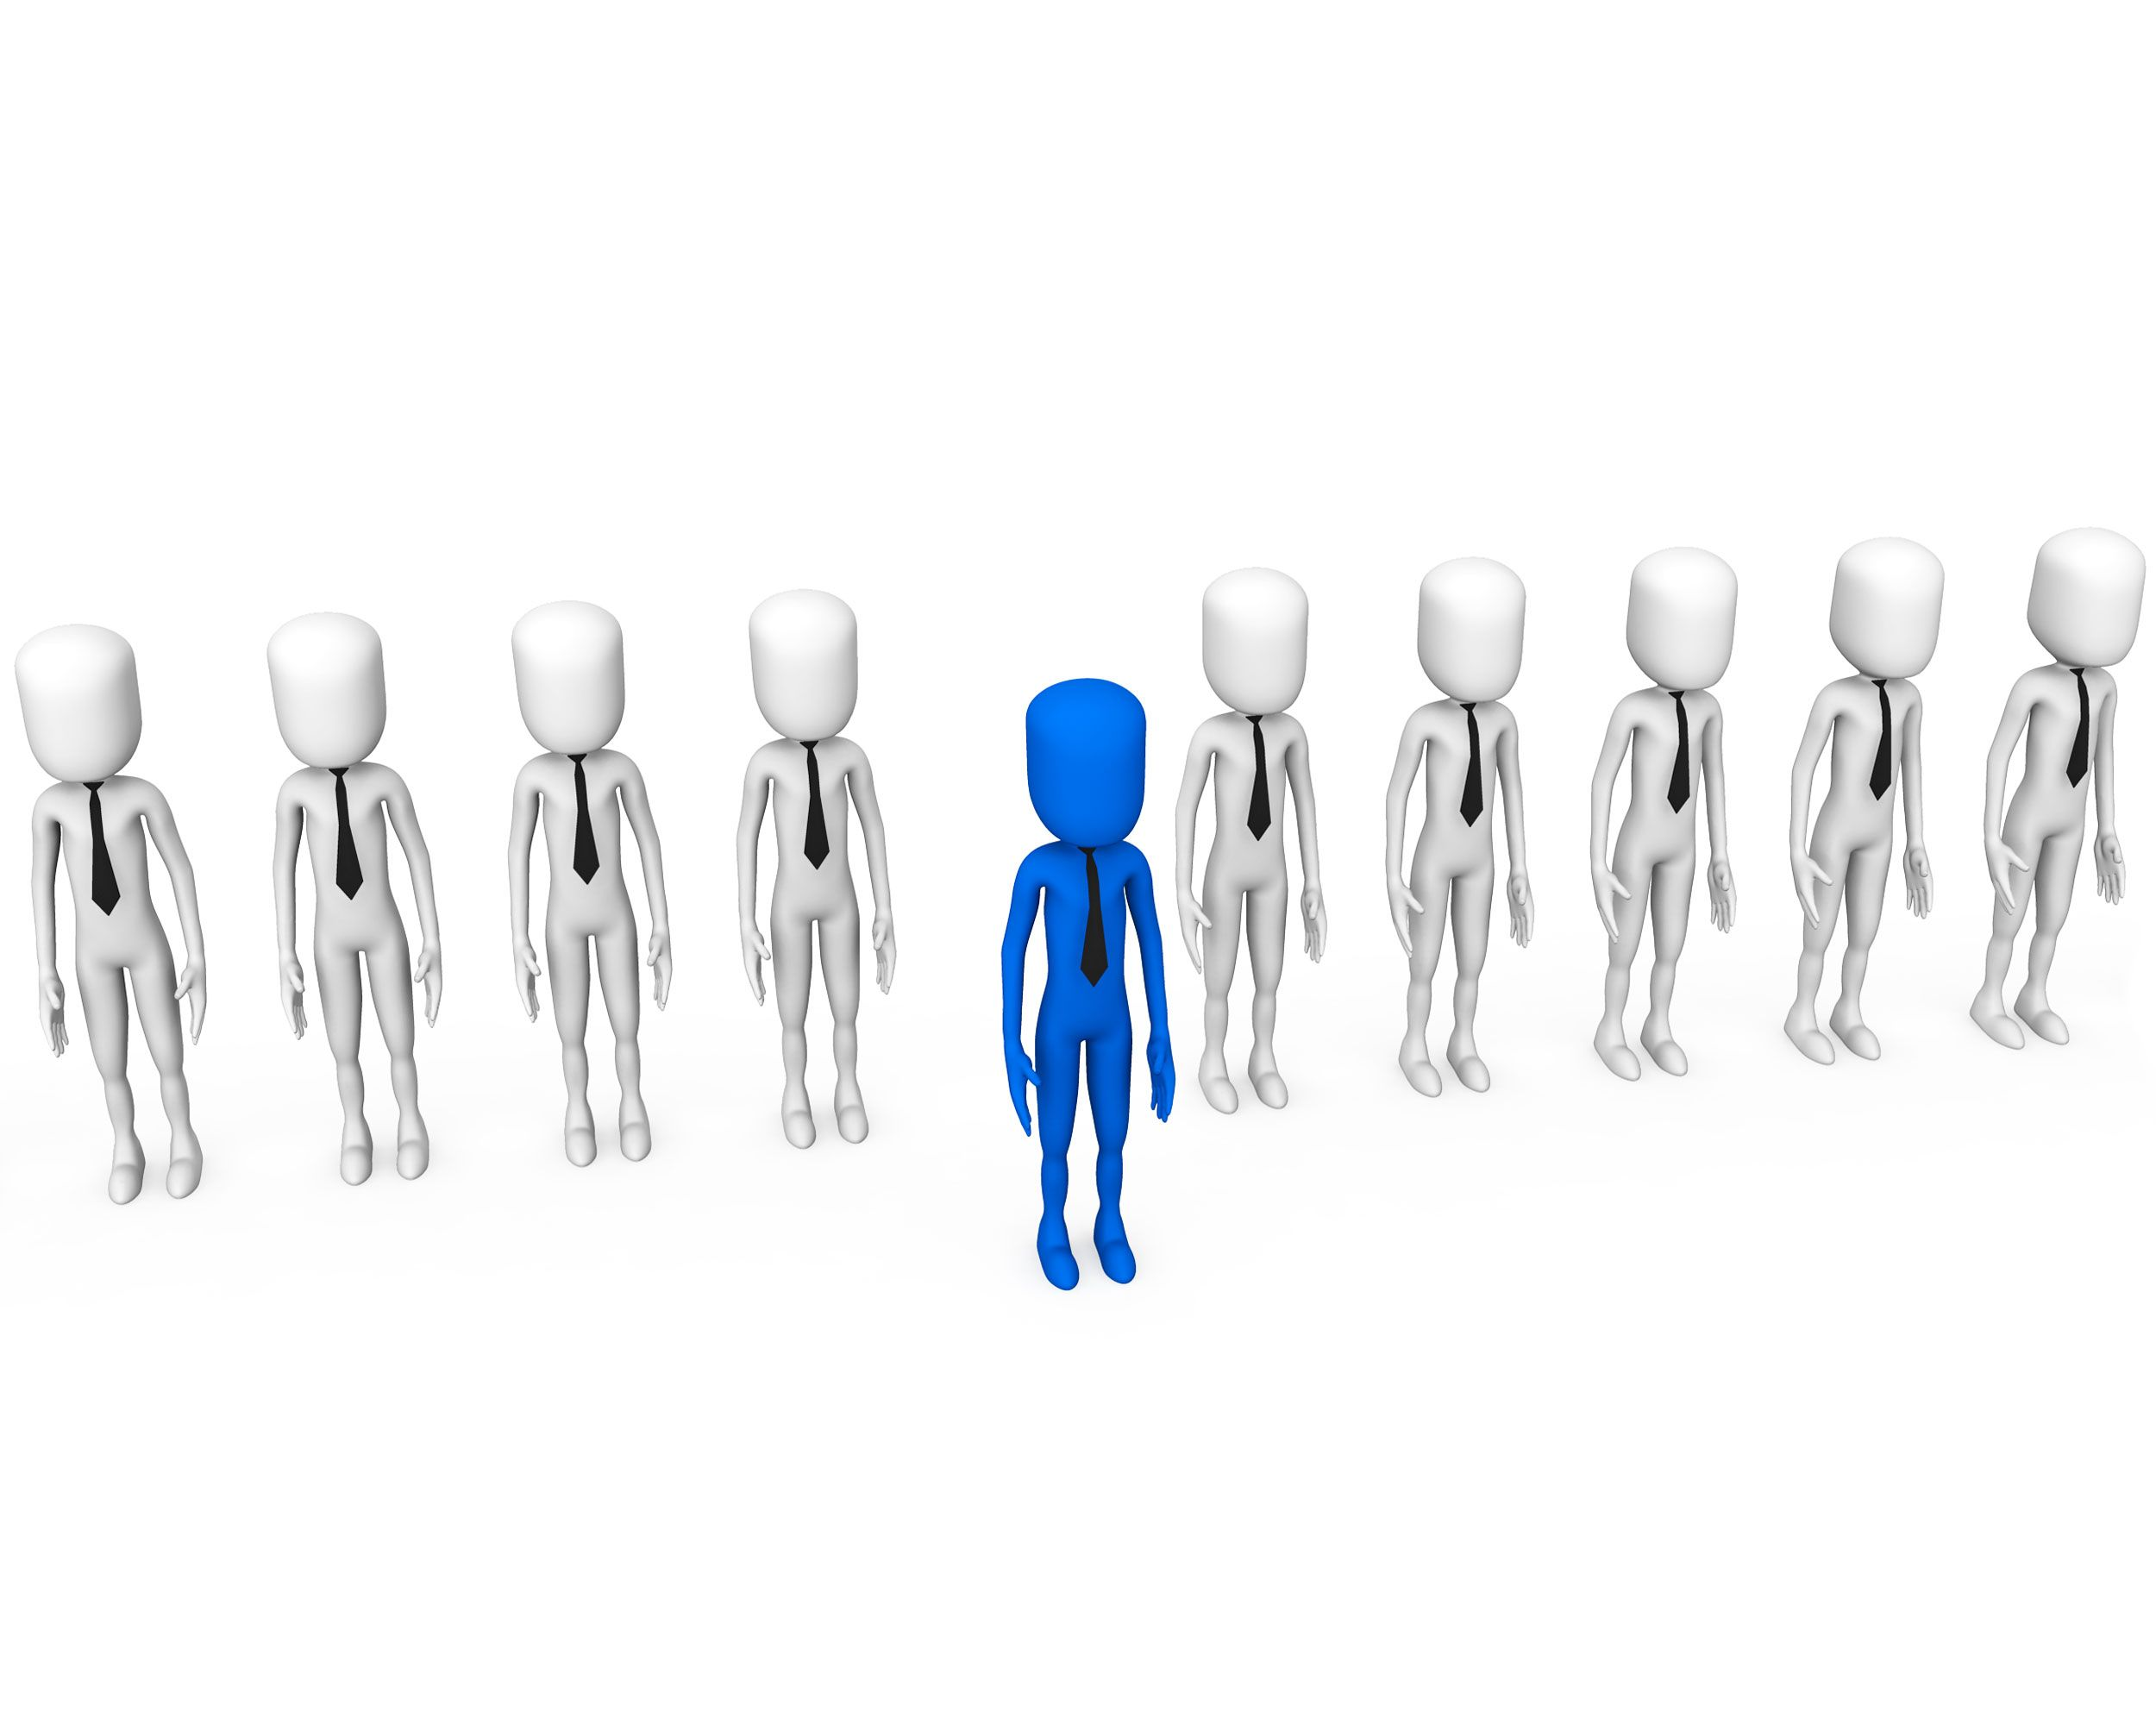 Line Of White 3D Men With One Blue Man Showing Leadership